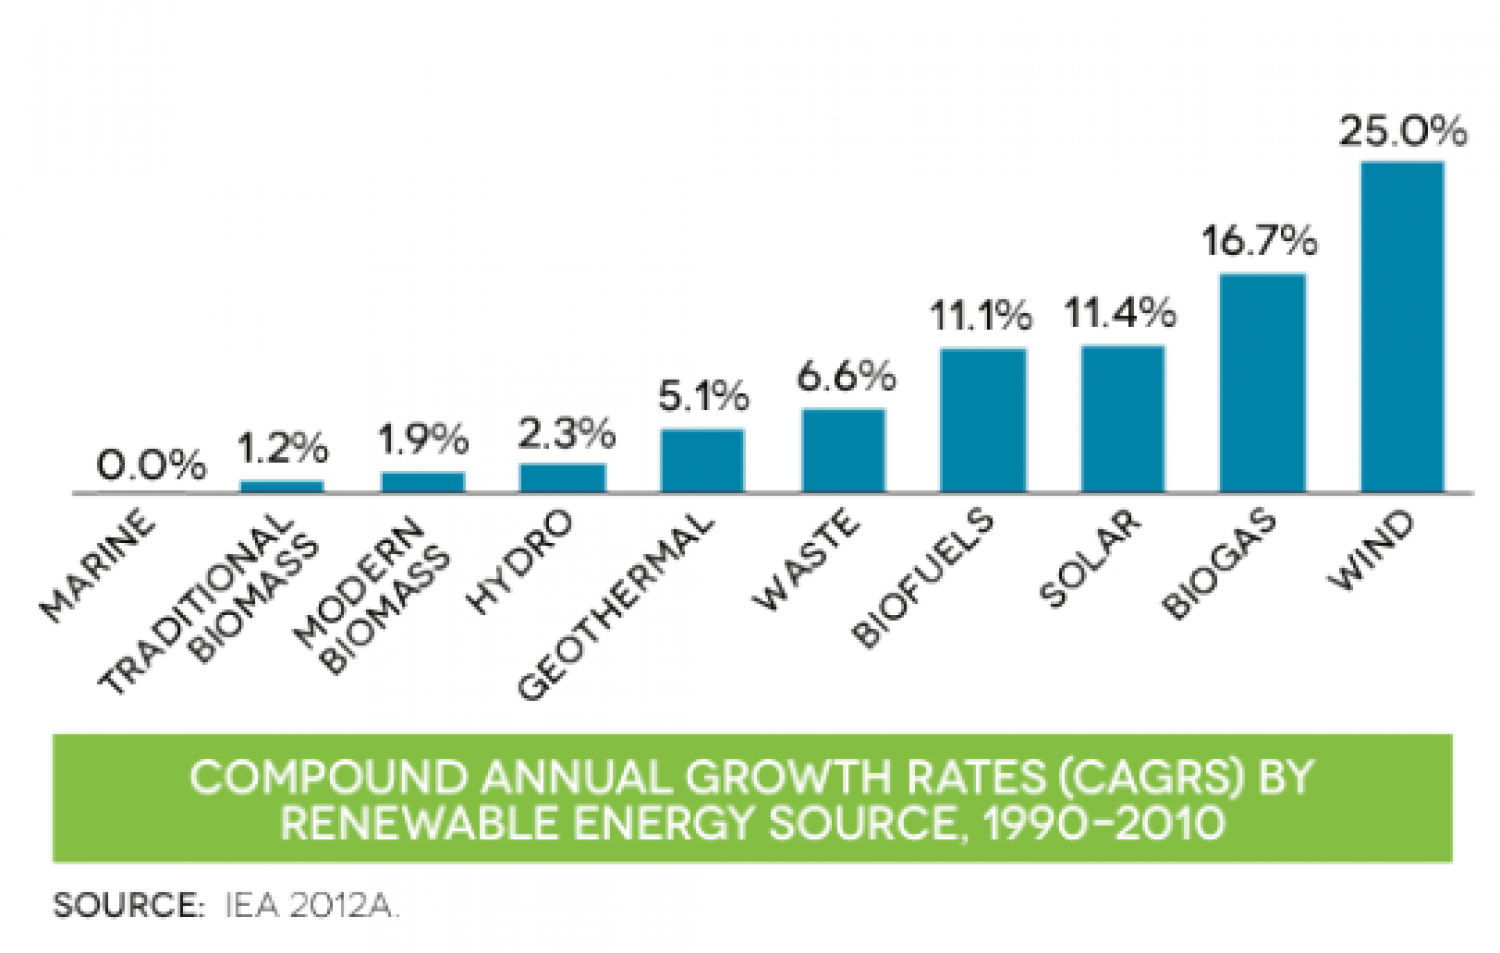 Compound annual growth rates (CAGRS) by renewable energy source, 1990-2010 Infographic